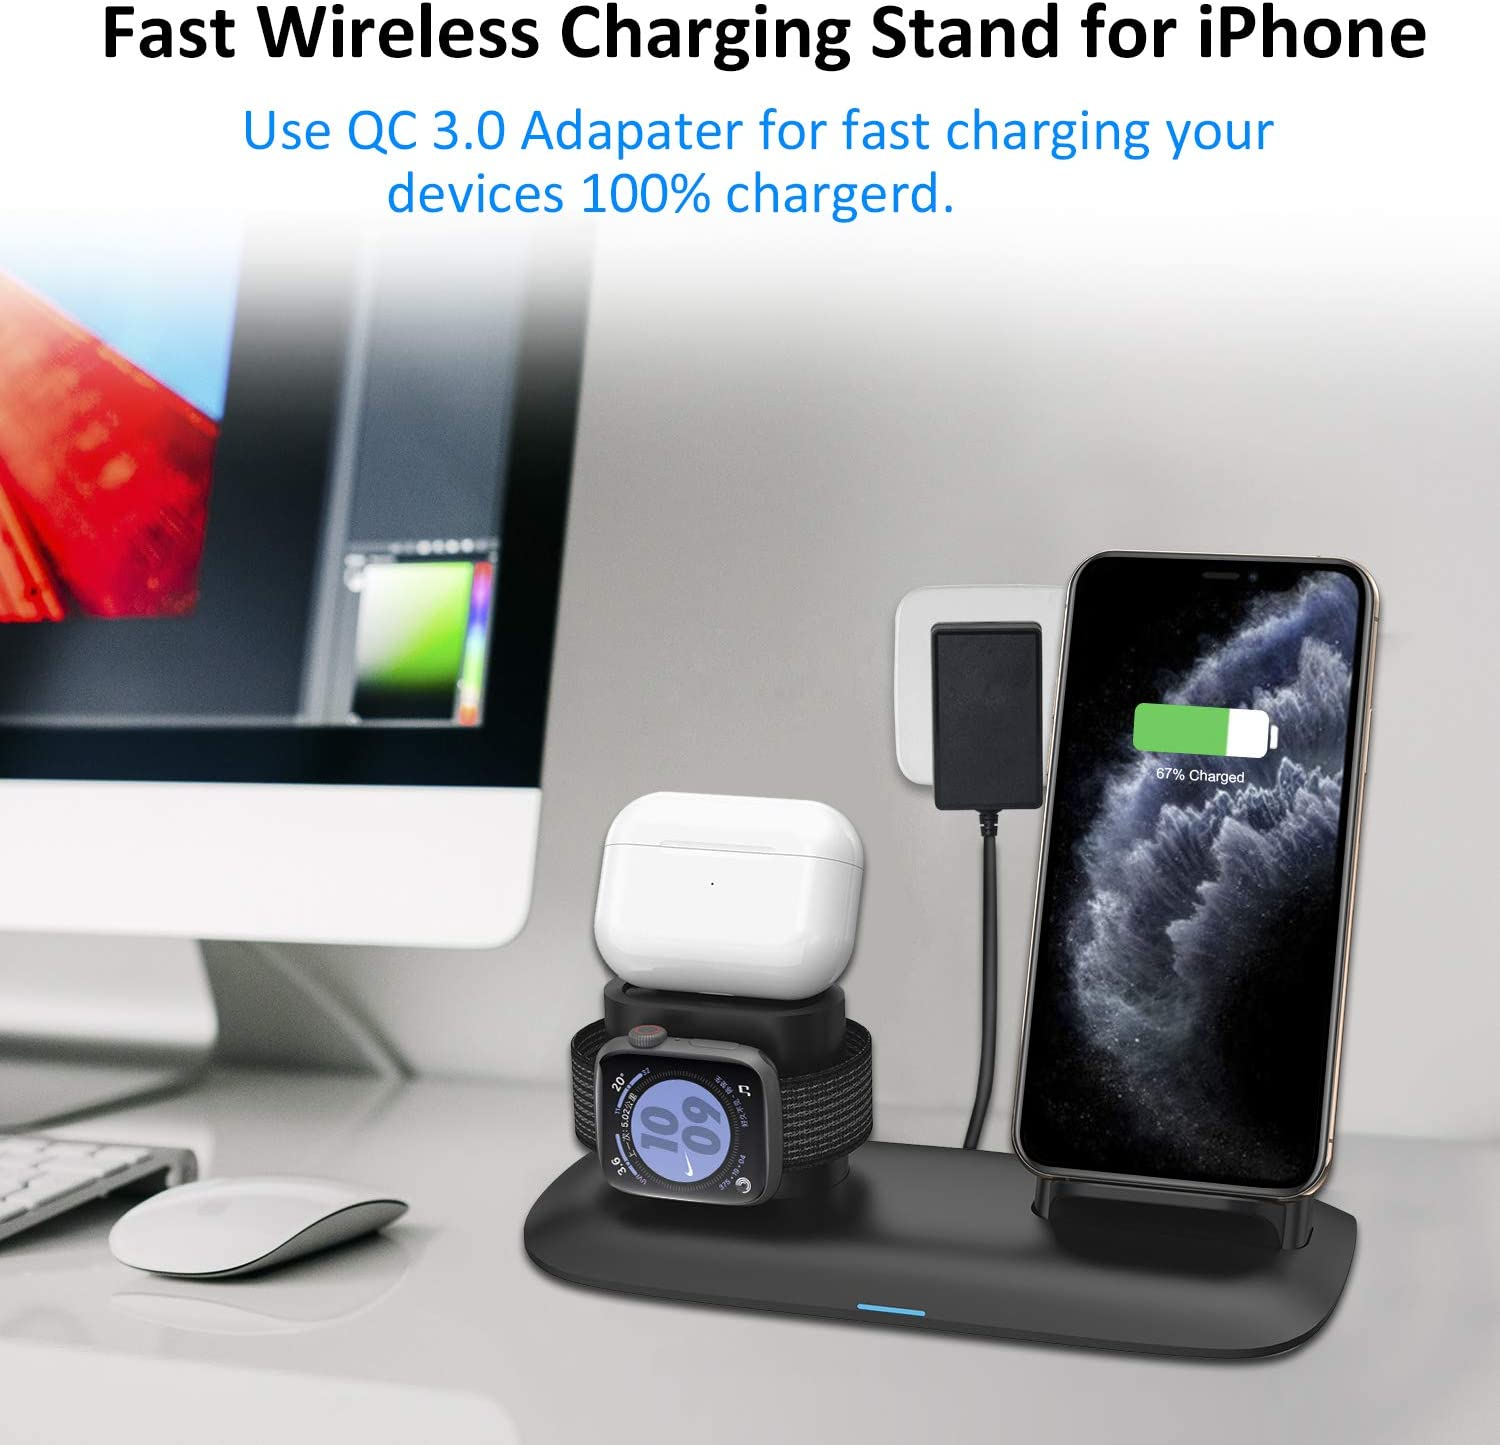 3-in-1 Qi 7.5W//10W Fast Charging Stand Works for iPhone 11//11 Pro//8//8/Plus//Xs MAX//XS//XR and iWatch Series 5 4 3 2 1 Wireless Charging Station for iPhone AirPods and Apple Watch Wireless Charger